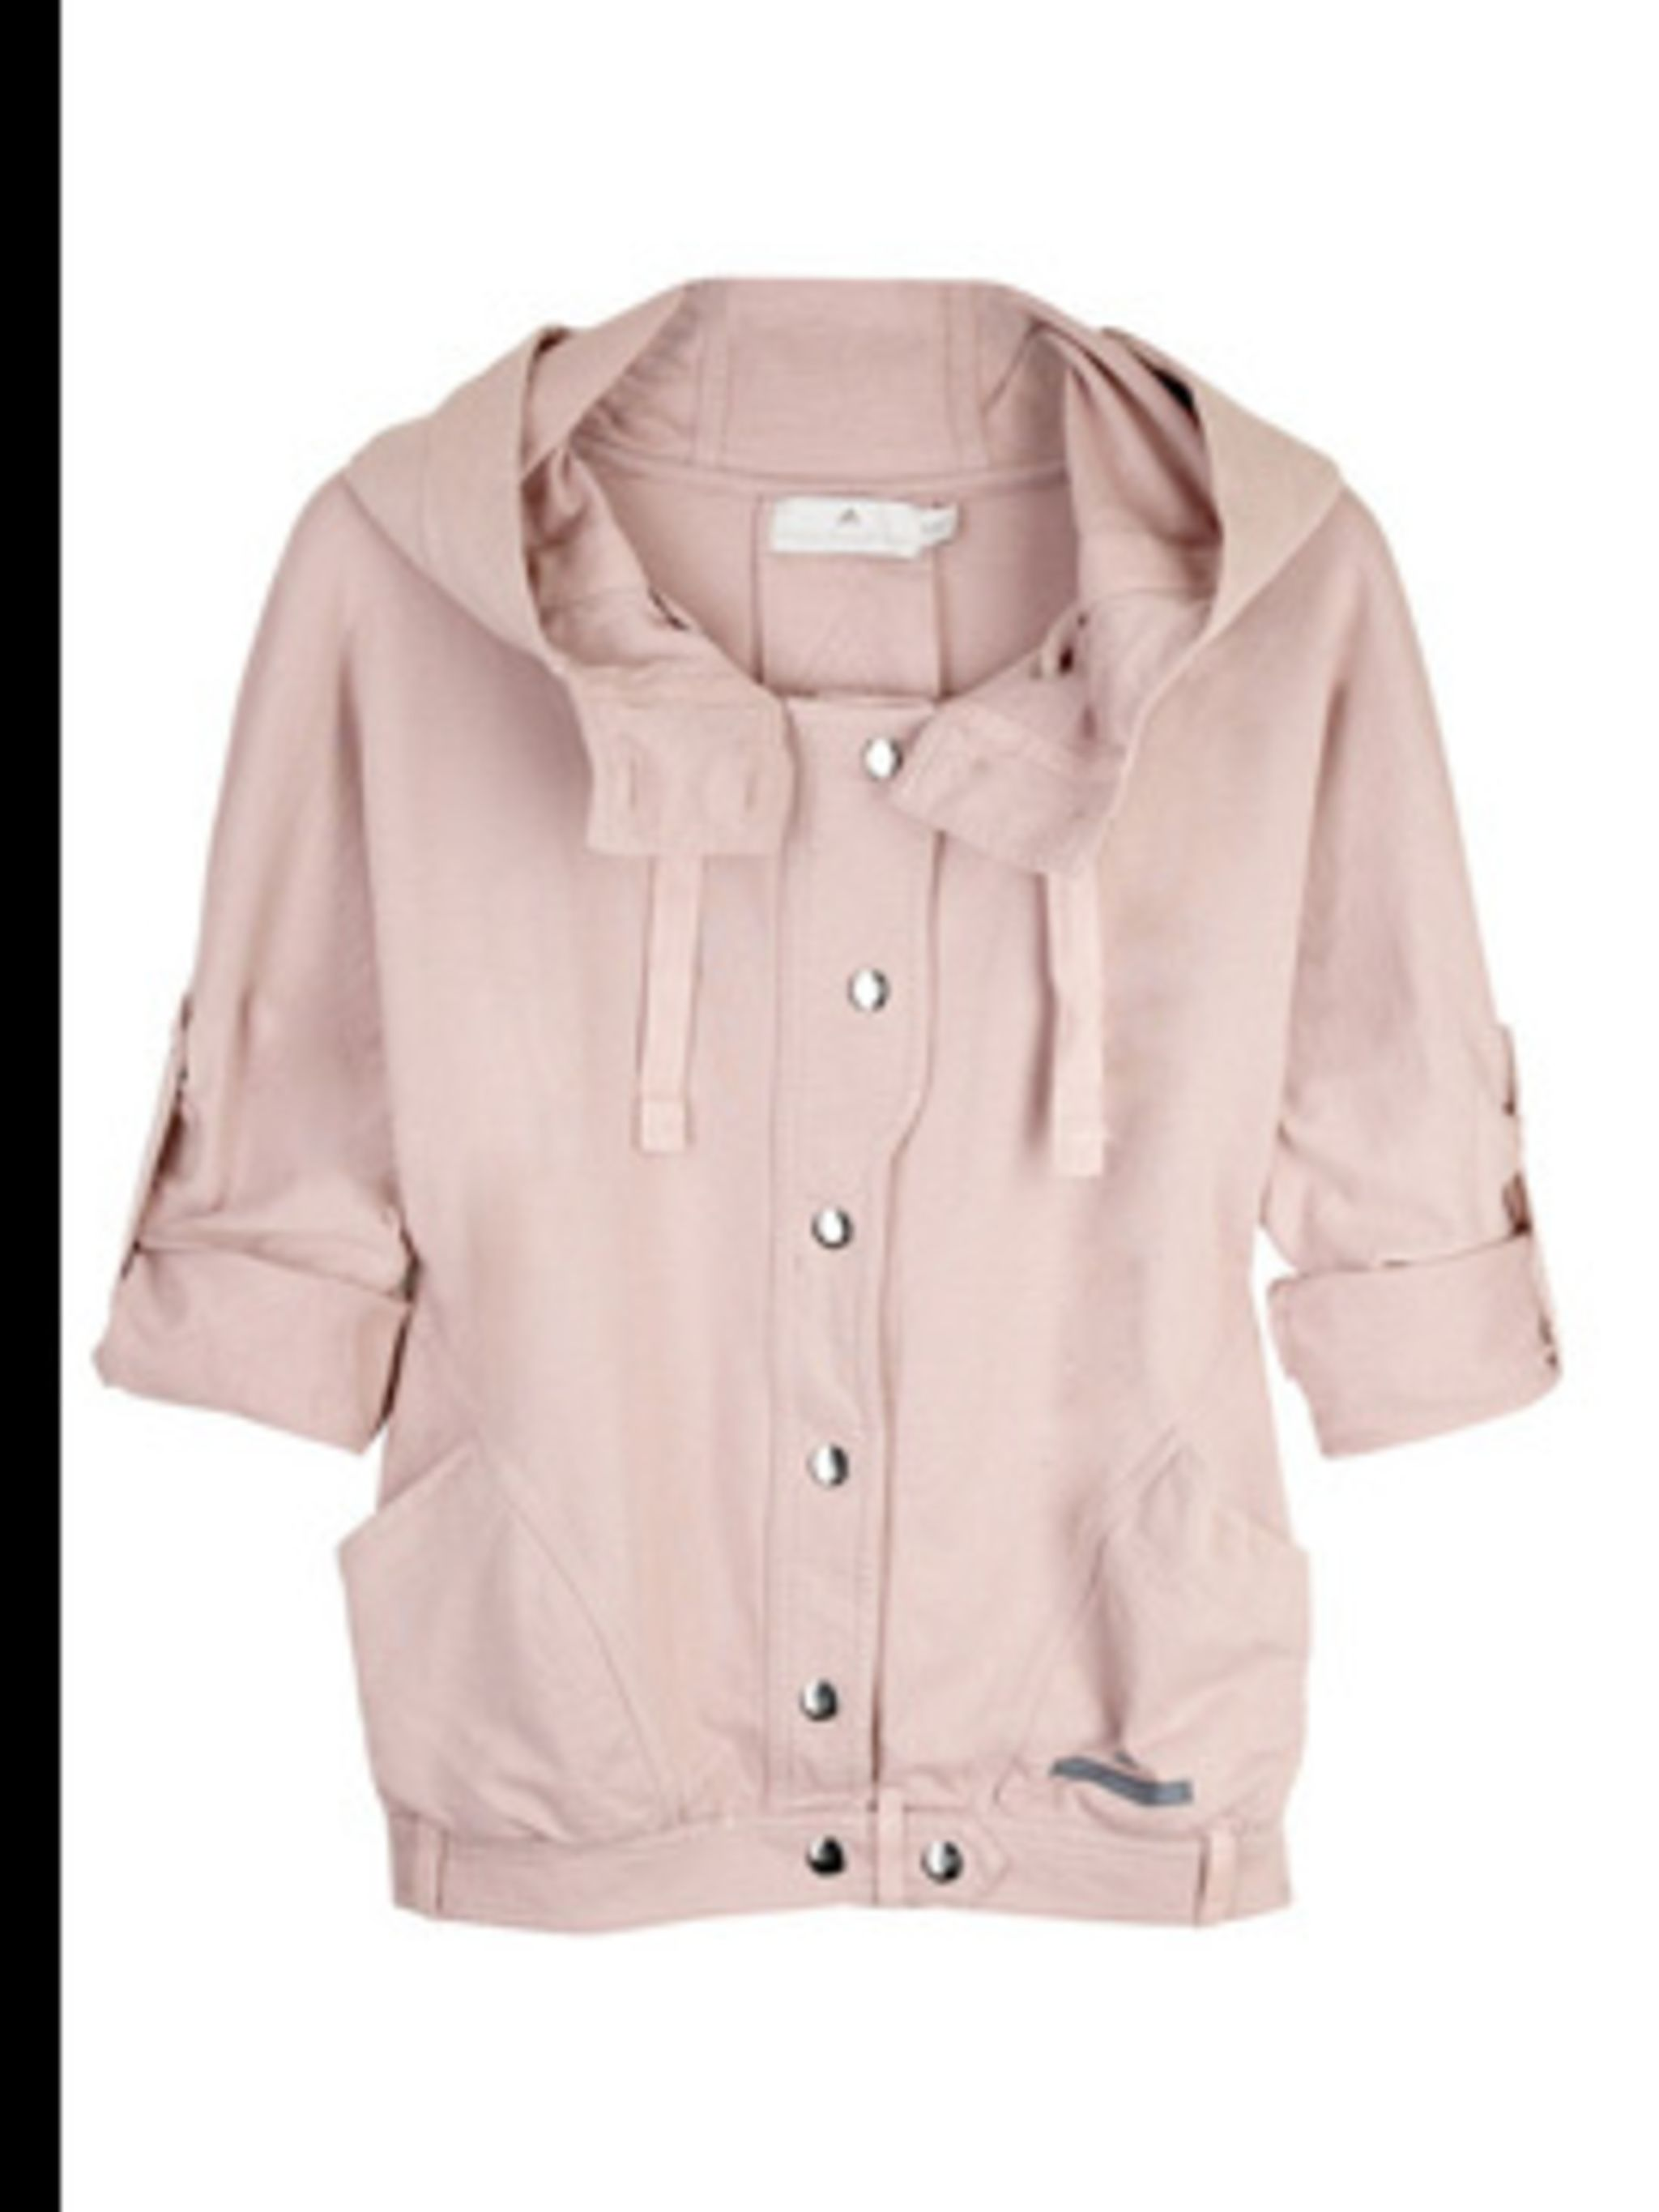 "<p>Cotton hooded sweatshirt jacket, £75, by Adidas by Stella McCartney at <a href=""http://www.net-a-porter.com/product/41055"">www.net-a-porter.com</a></p>"